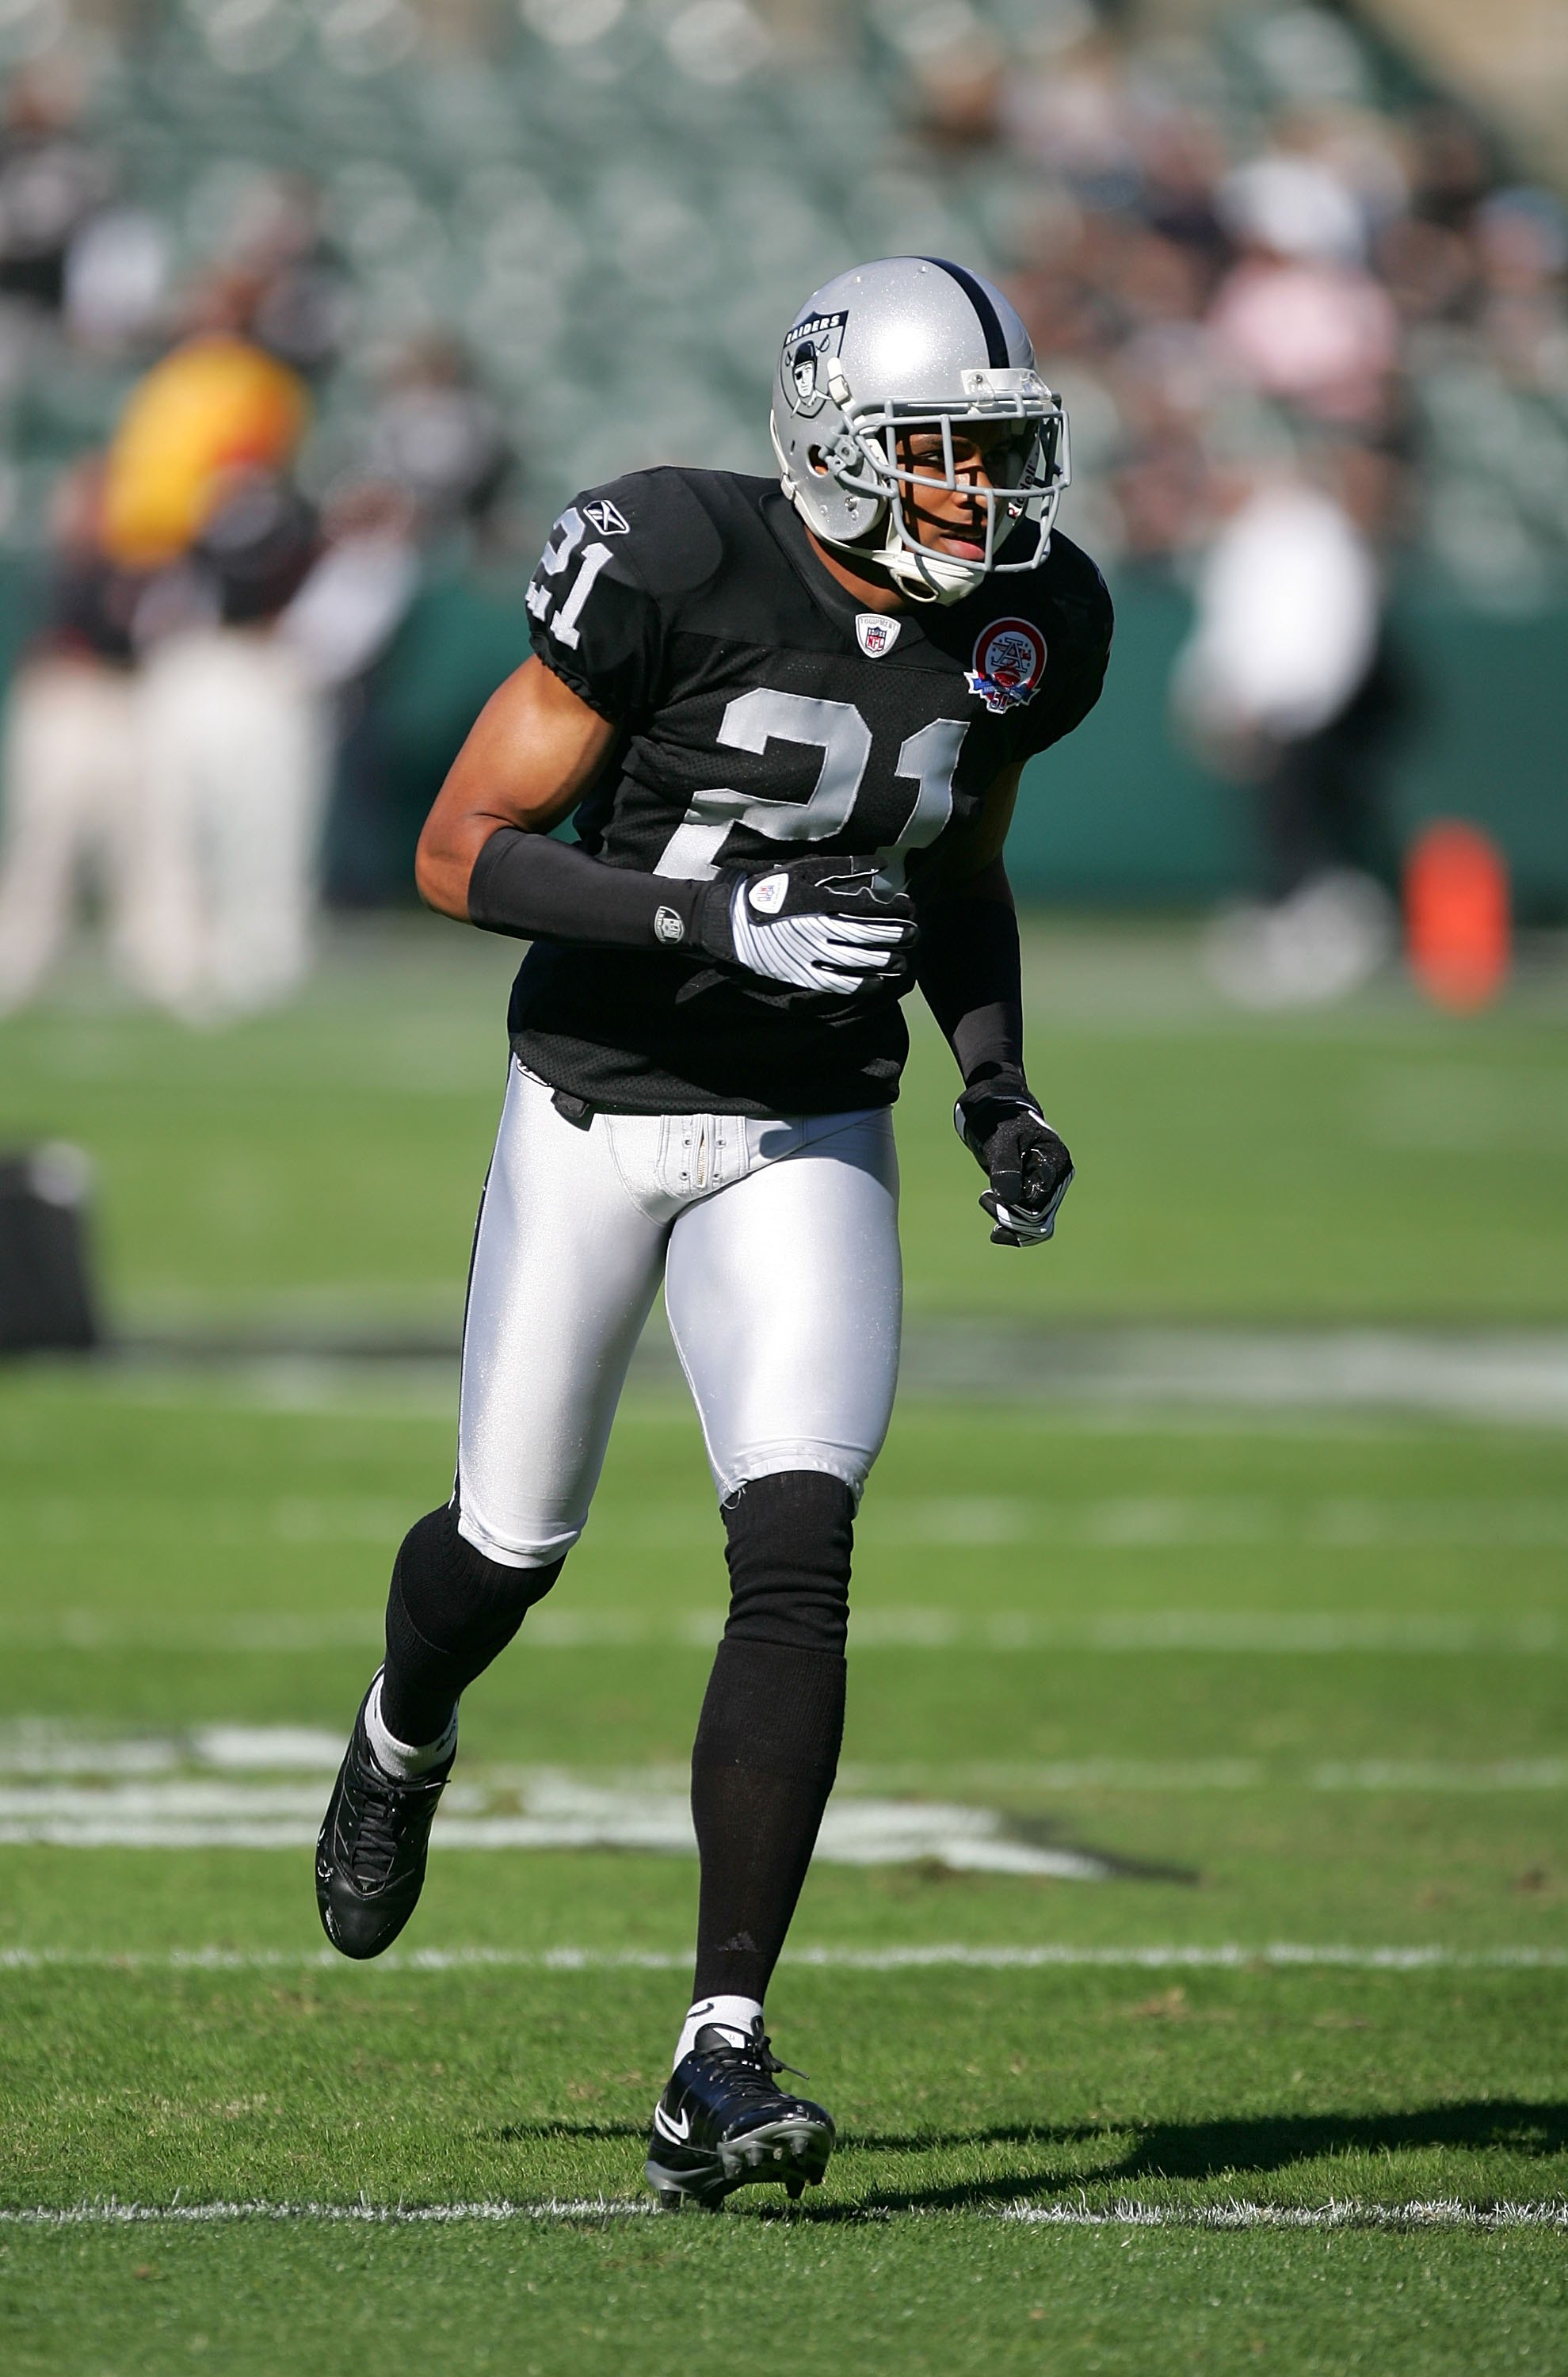 OAKLAND, CA - NOVEMBER 15:  Nnamdi Asomugha #21 of the Oakland Raiders warms up before their game against the Kansas City Chiefs at Oakland-Alameda County Coliseum on November 15, 2009 in Oakland, California.  (Photo by Ezra Shaw/Getty Images)